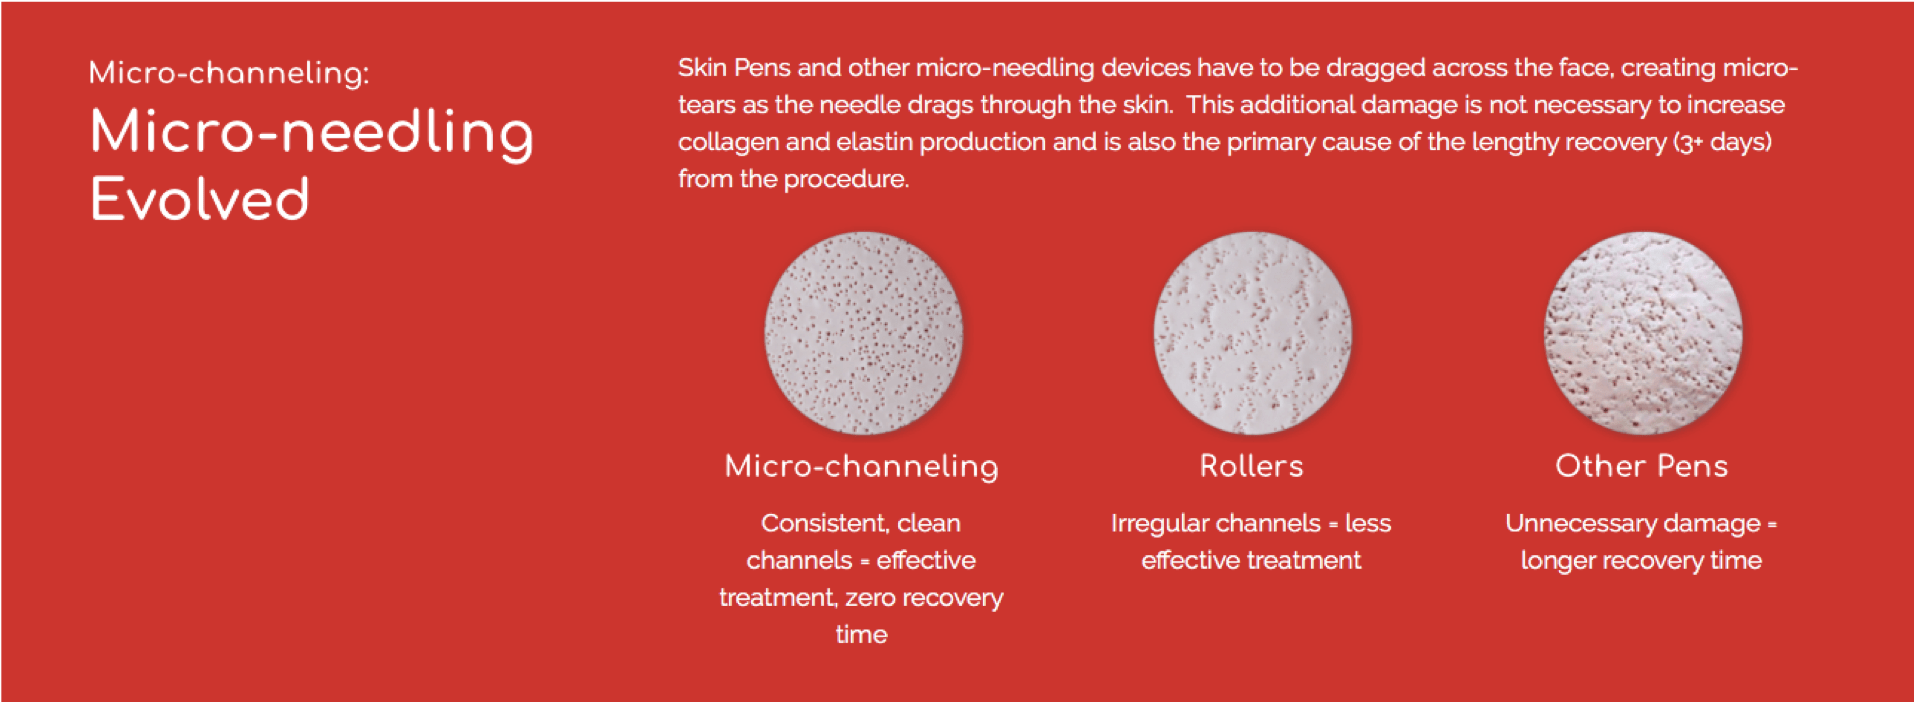 comparision with micro needling derma rollers